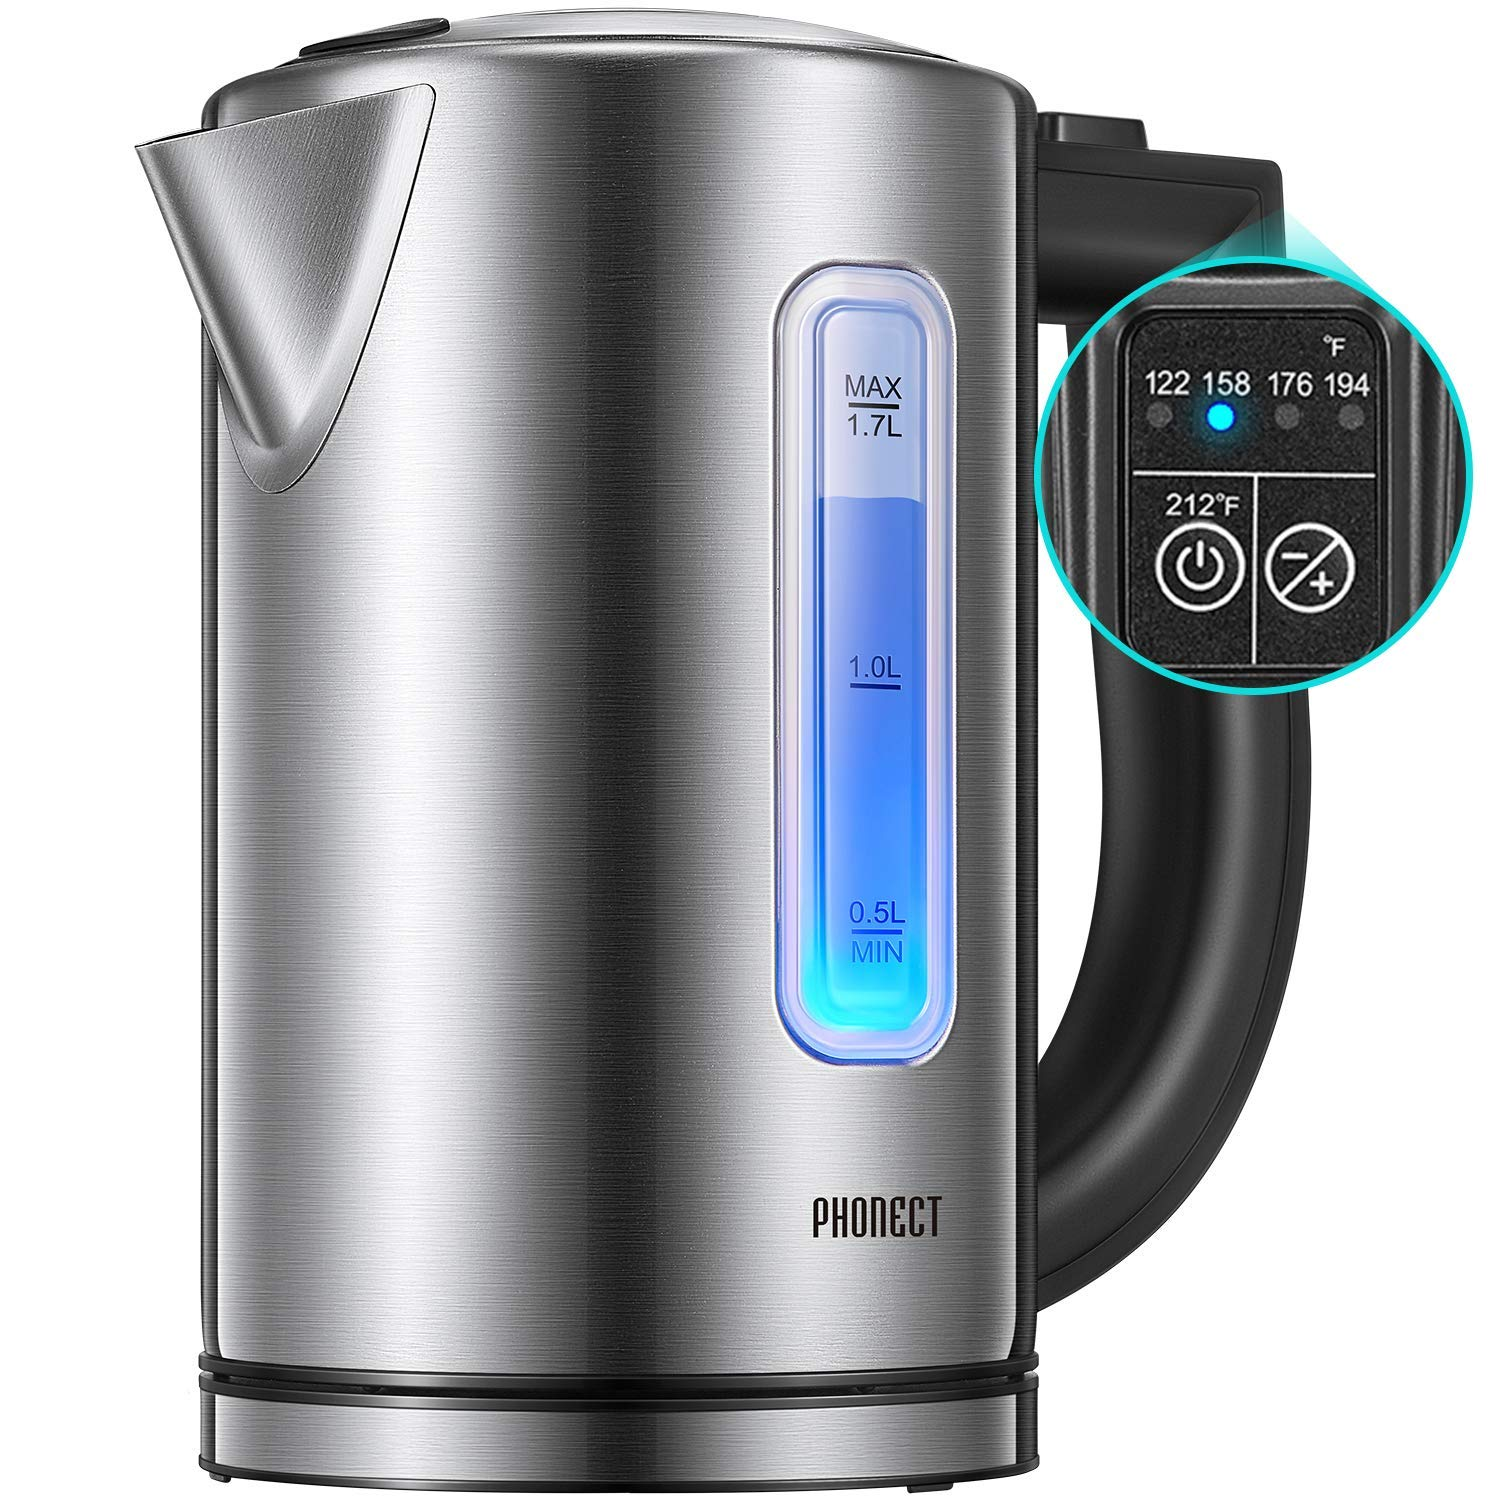 Electric Kettle Temperature Control, 1500W Ultra Fast Water Boiler Cordless Electric Water Heater Kettle with LED Indicator Light, 100% BPA free Window Lid and Gauge, 304 Stainless Steel Kettle ,1.7L, 2 Year Warranty, by Phonect by PHONECT